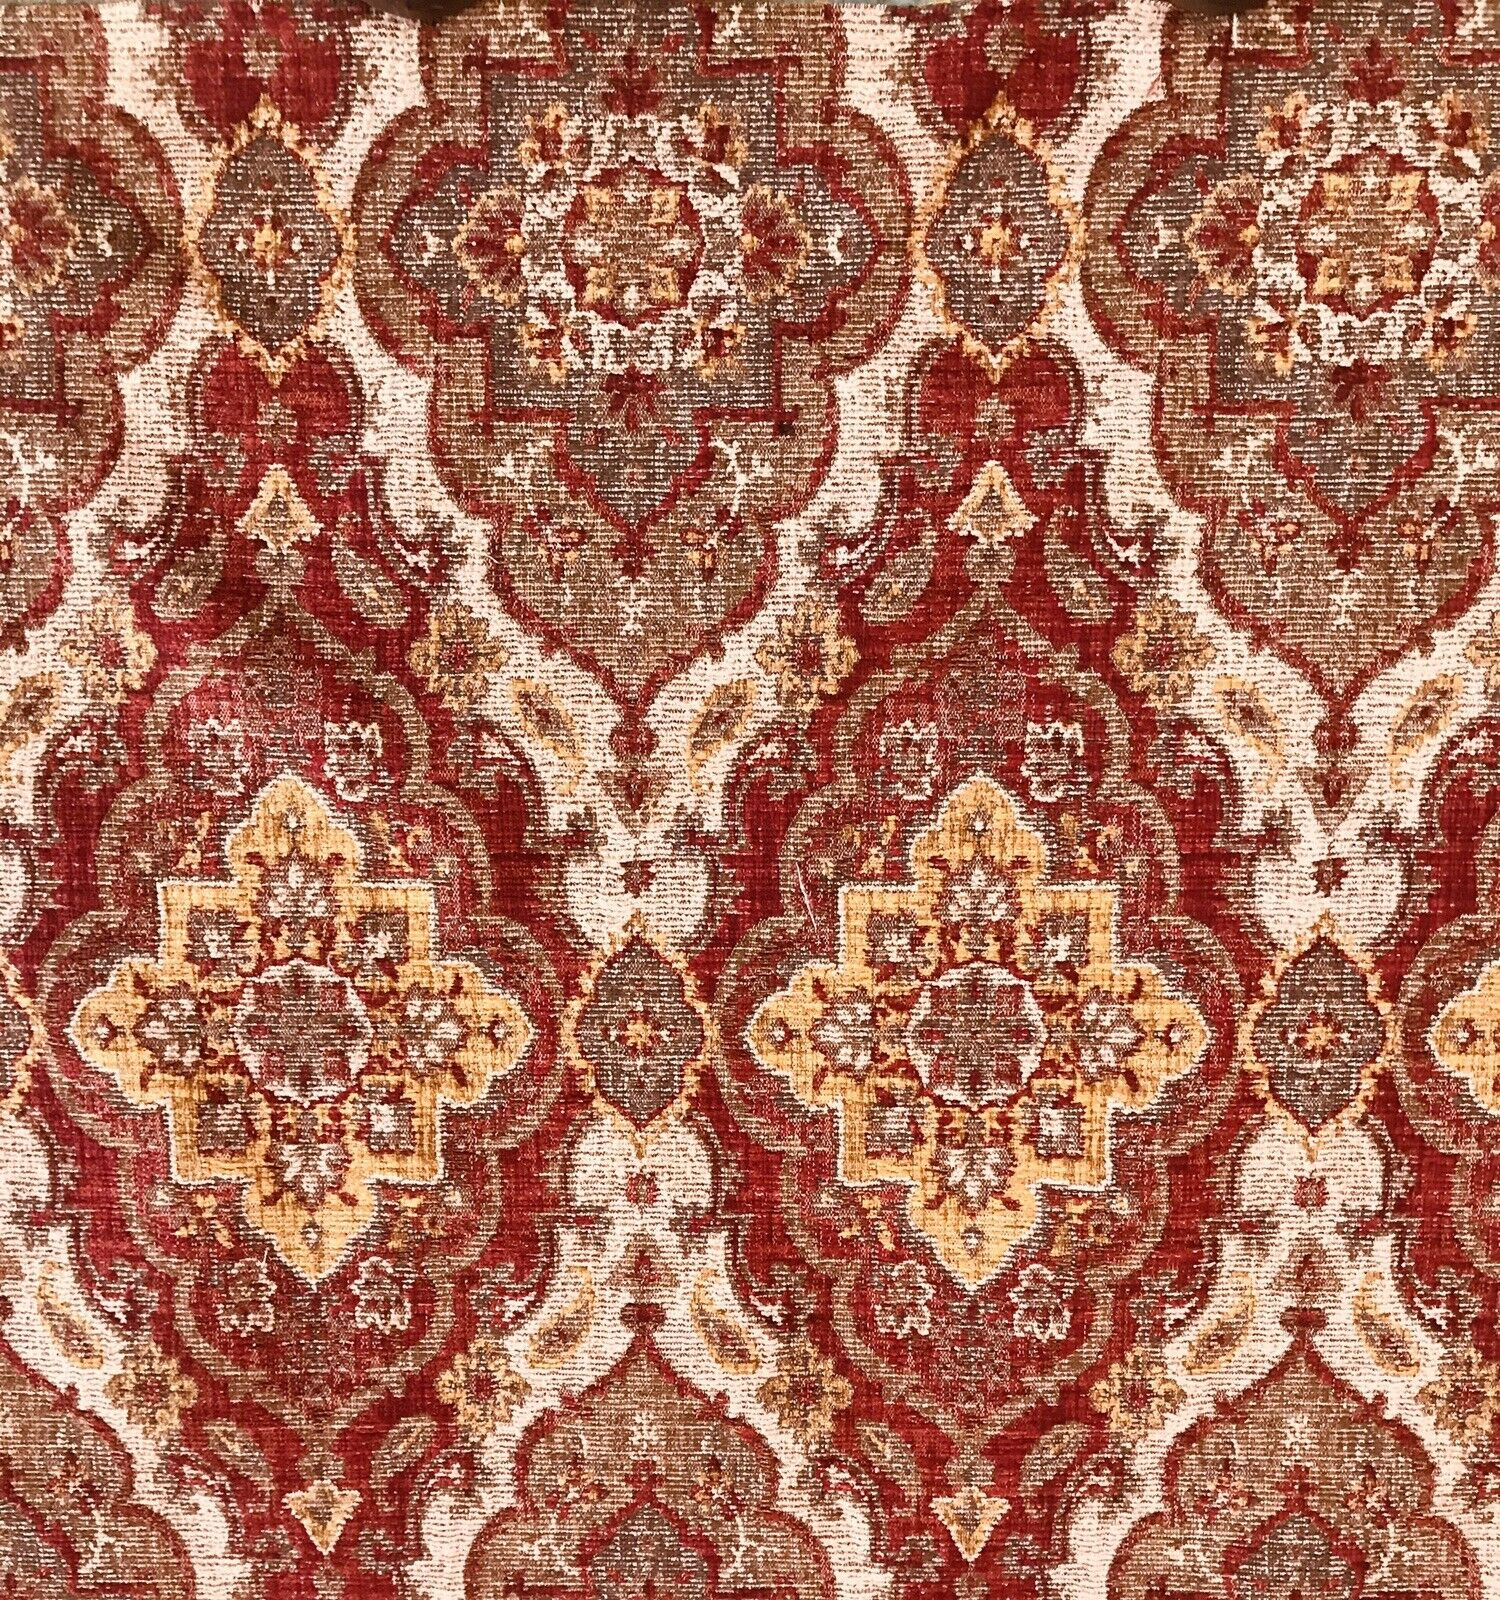 Designer Kilim Rug Inspired Upholstery Fabric Sold By The Yard- Red